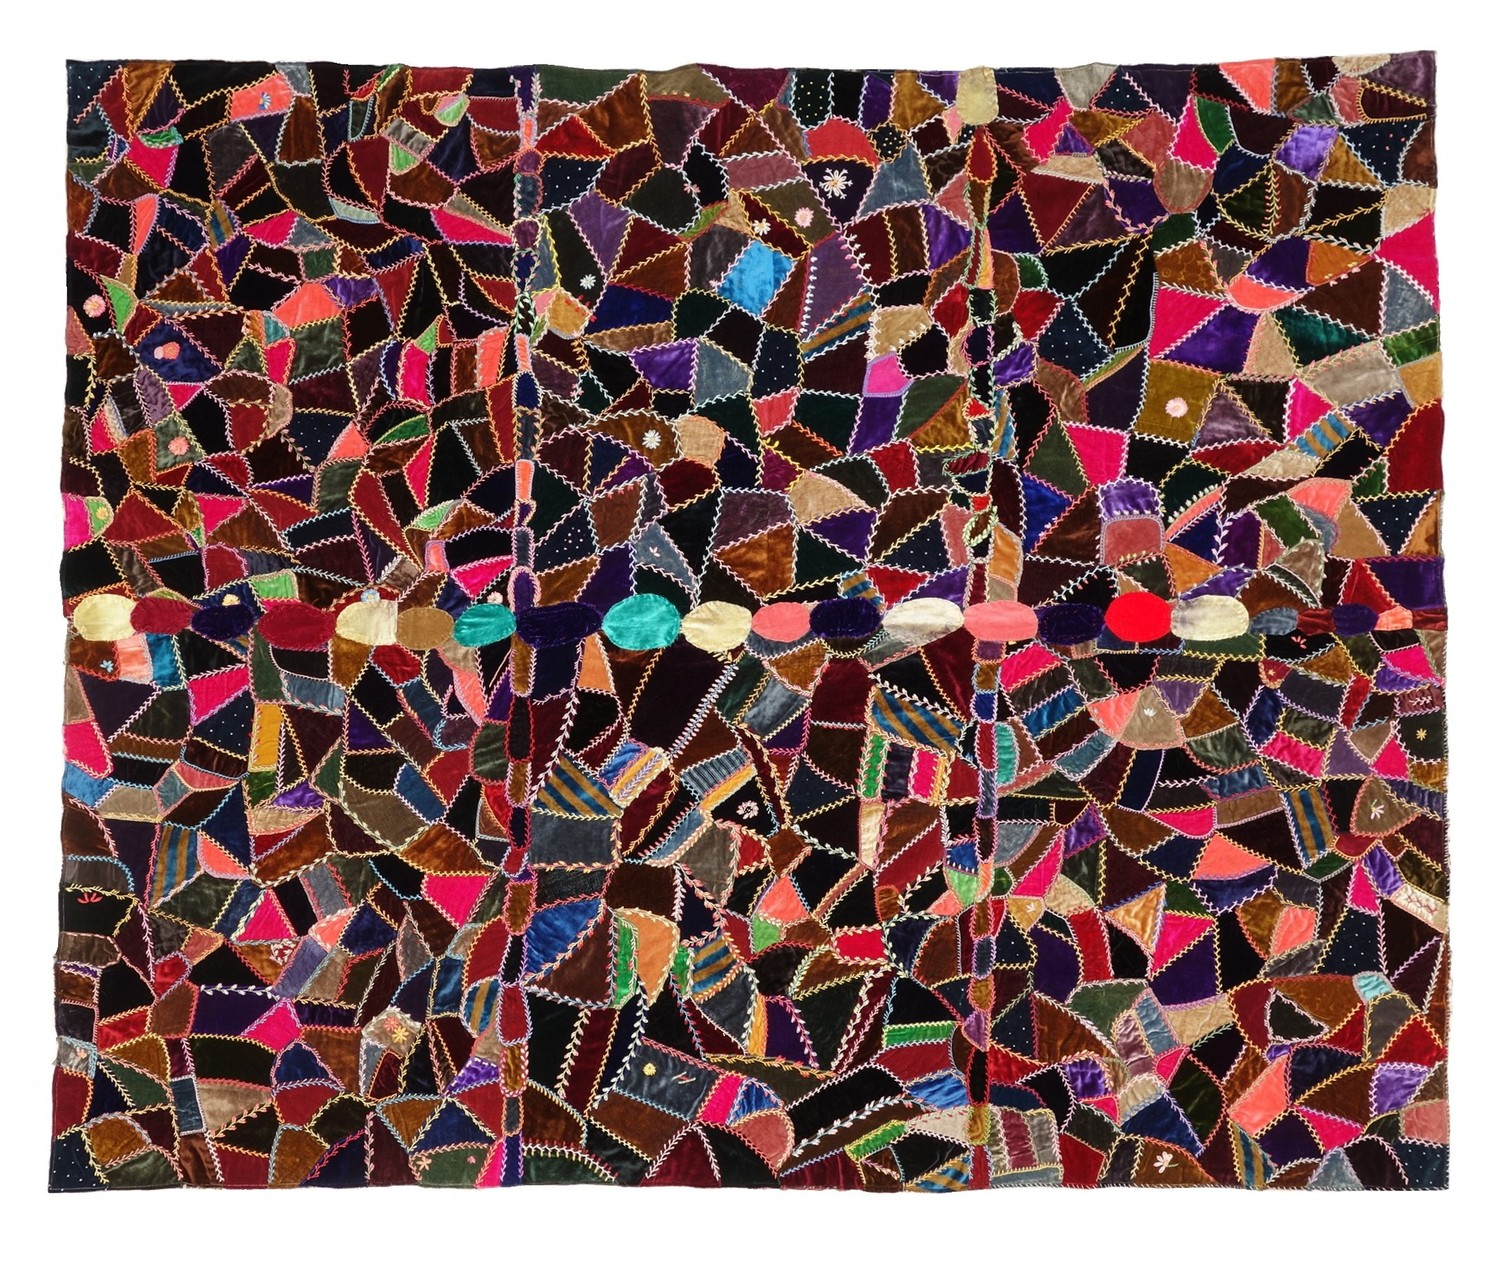 No. 46. Part of a velvet 'crazy quilt' made from various types of velvet (1890's, USA; TRC 2018.2407).